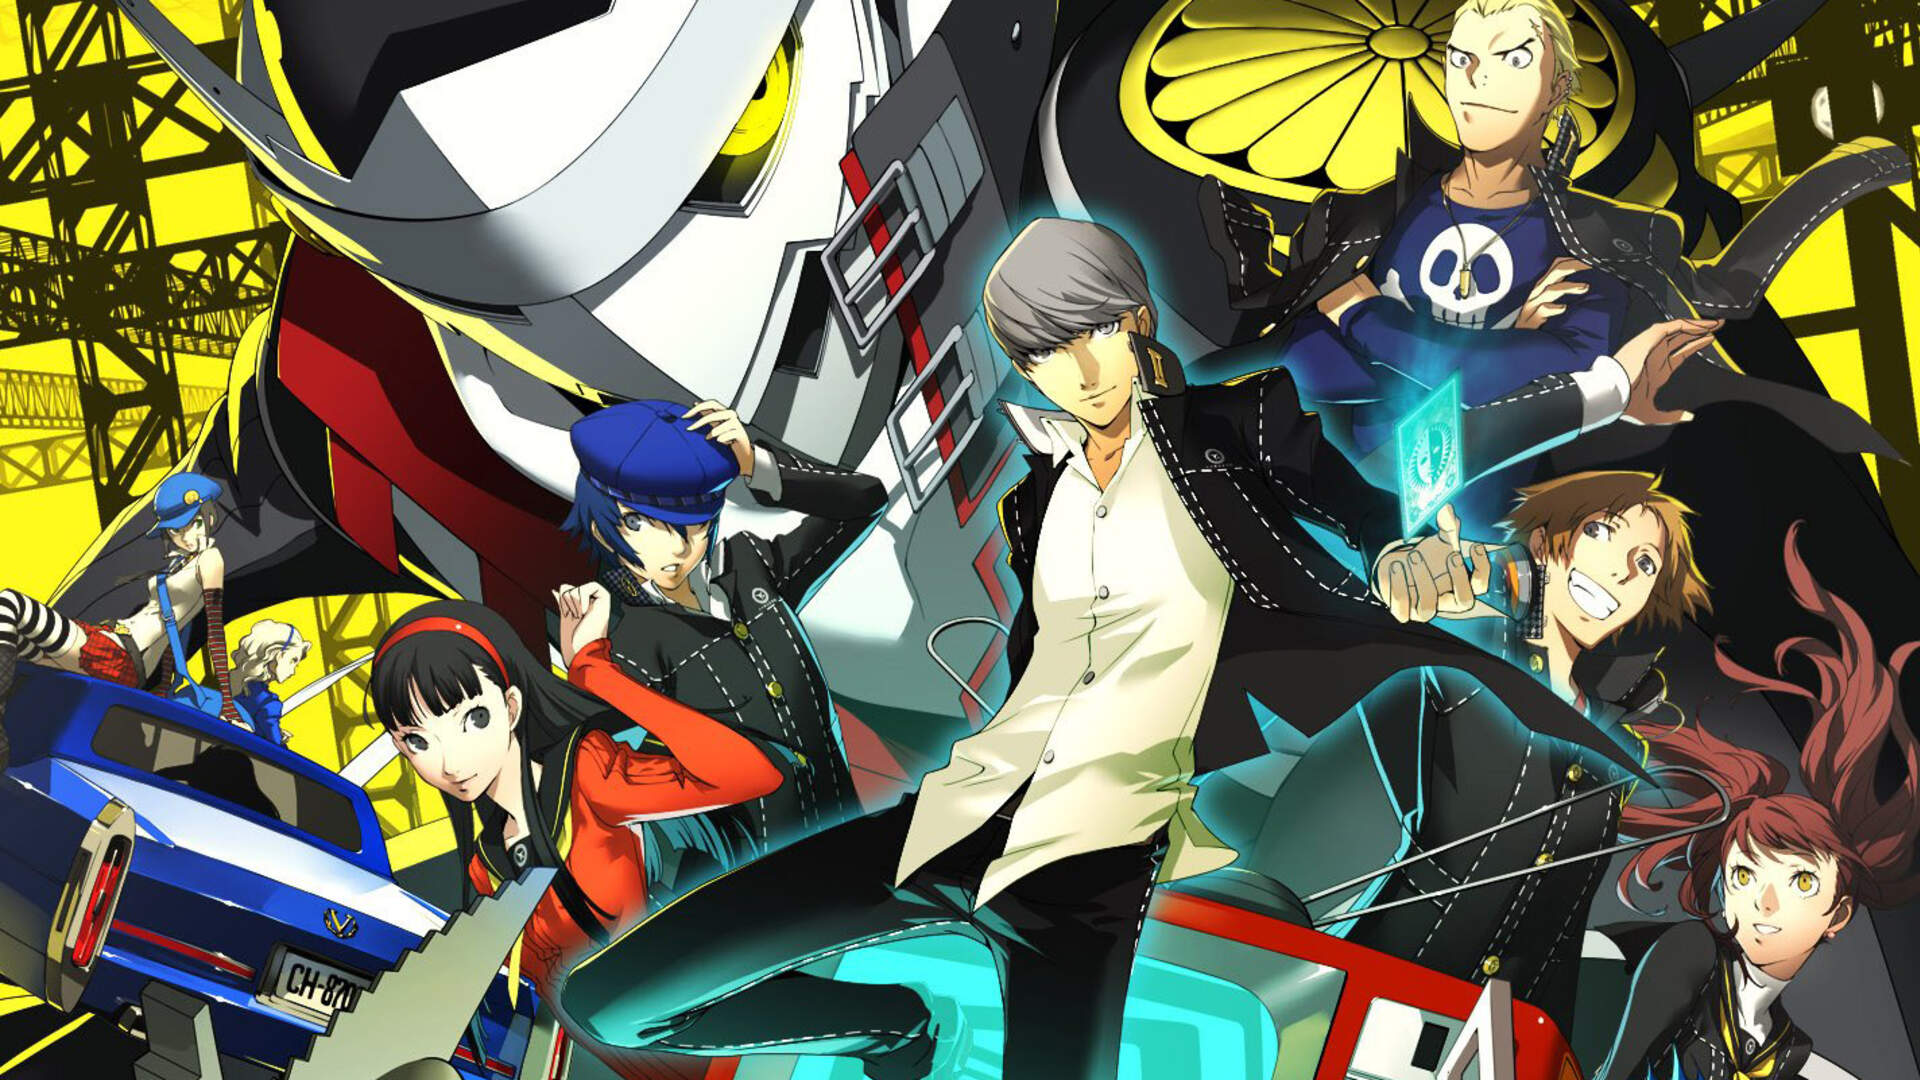 A Persona 4 Golden Modder Is Bringing Light to the World By Letting You Date Yosuke